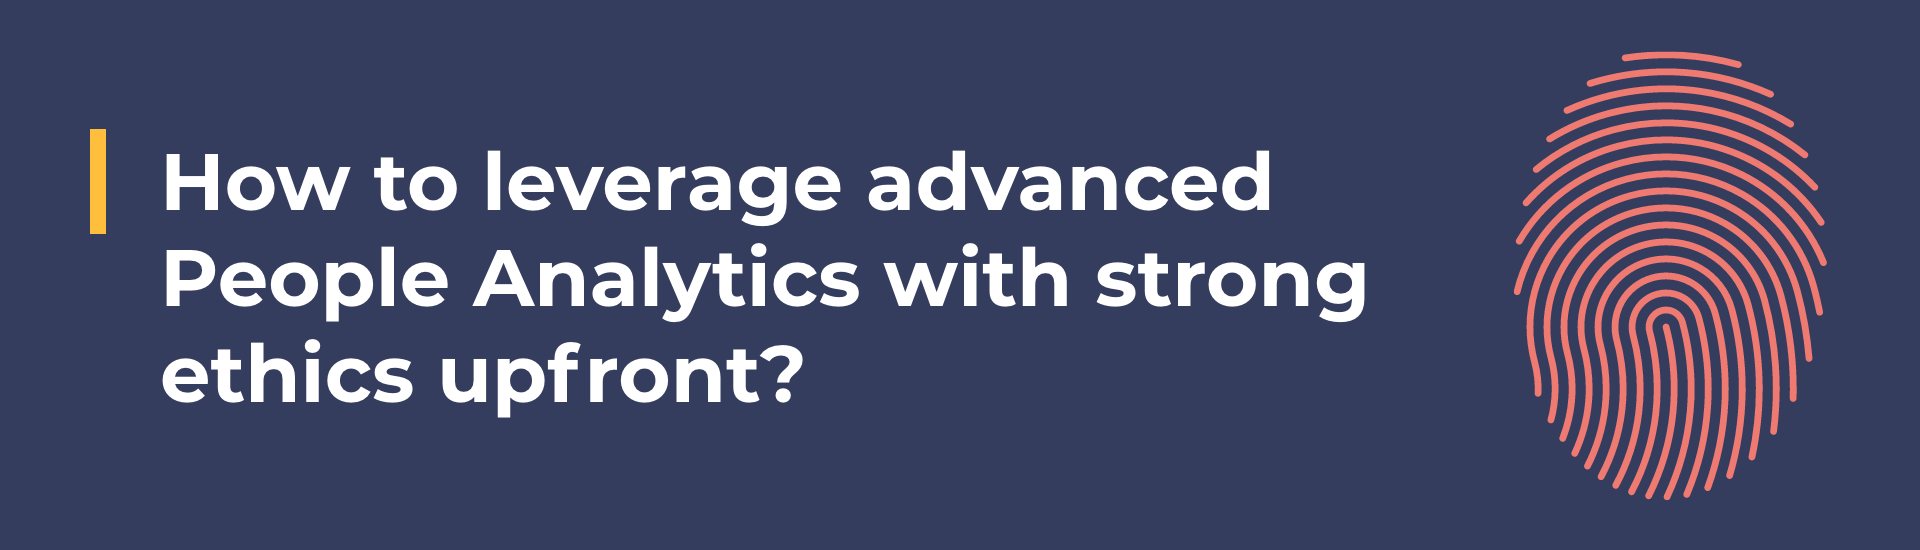 How to leverage advanced People Analytics with strong ethics upfront?